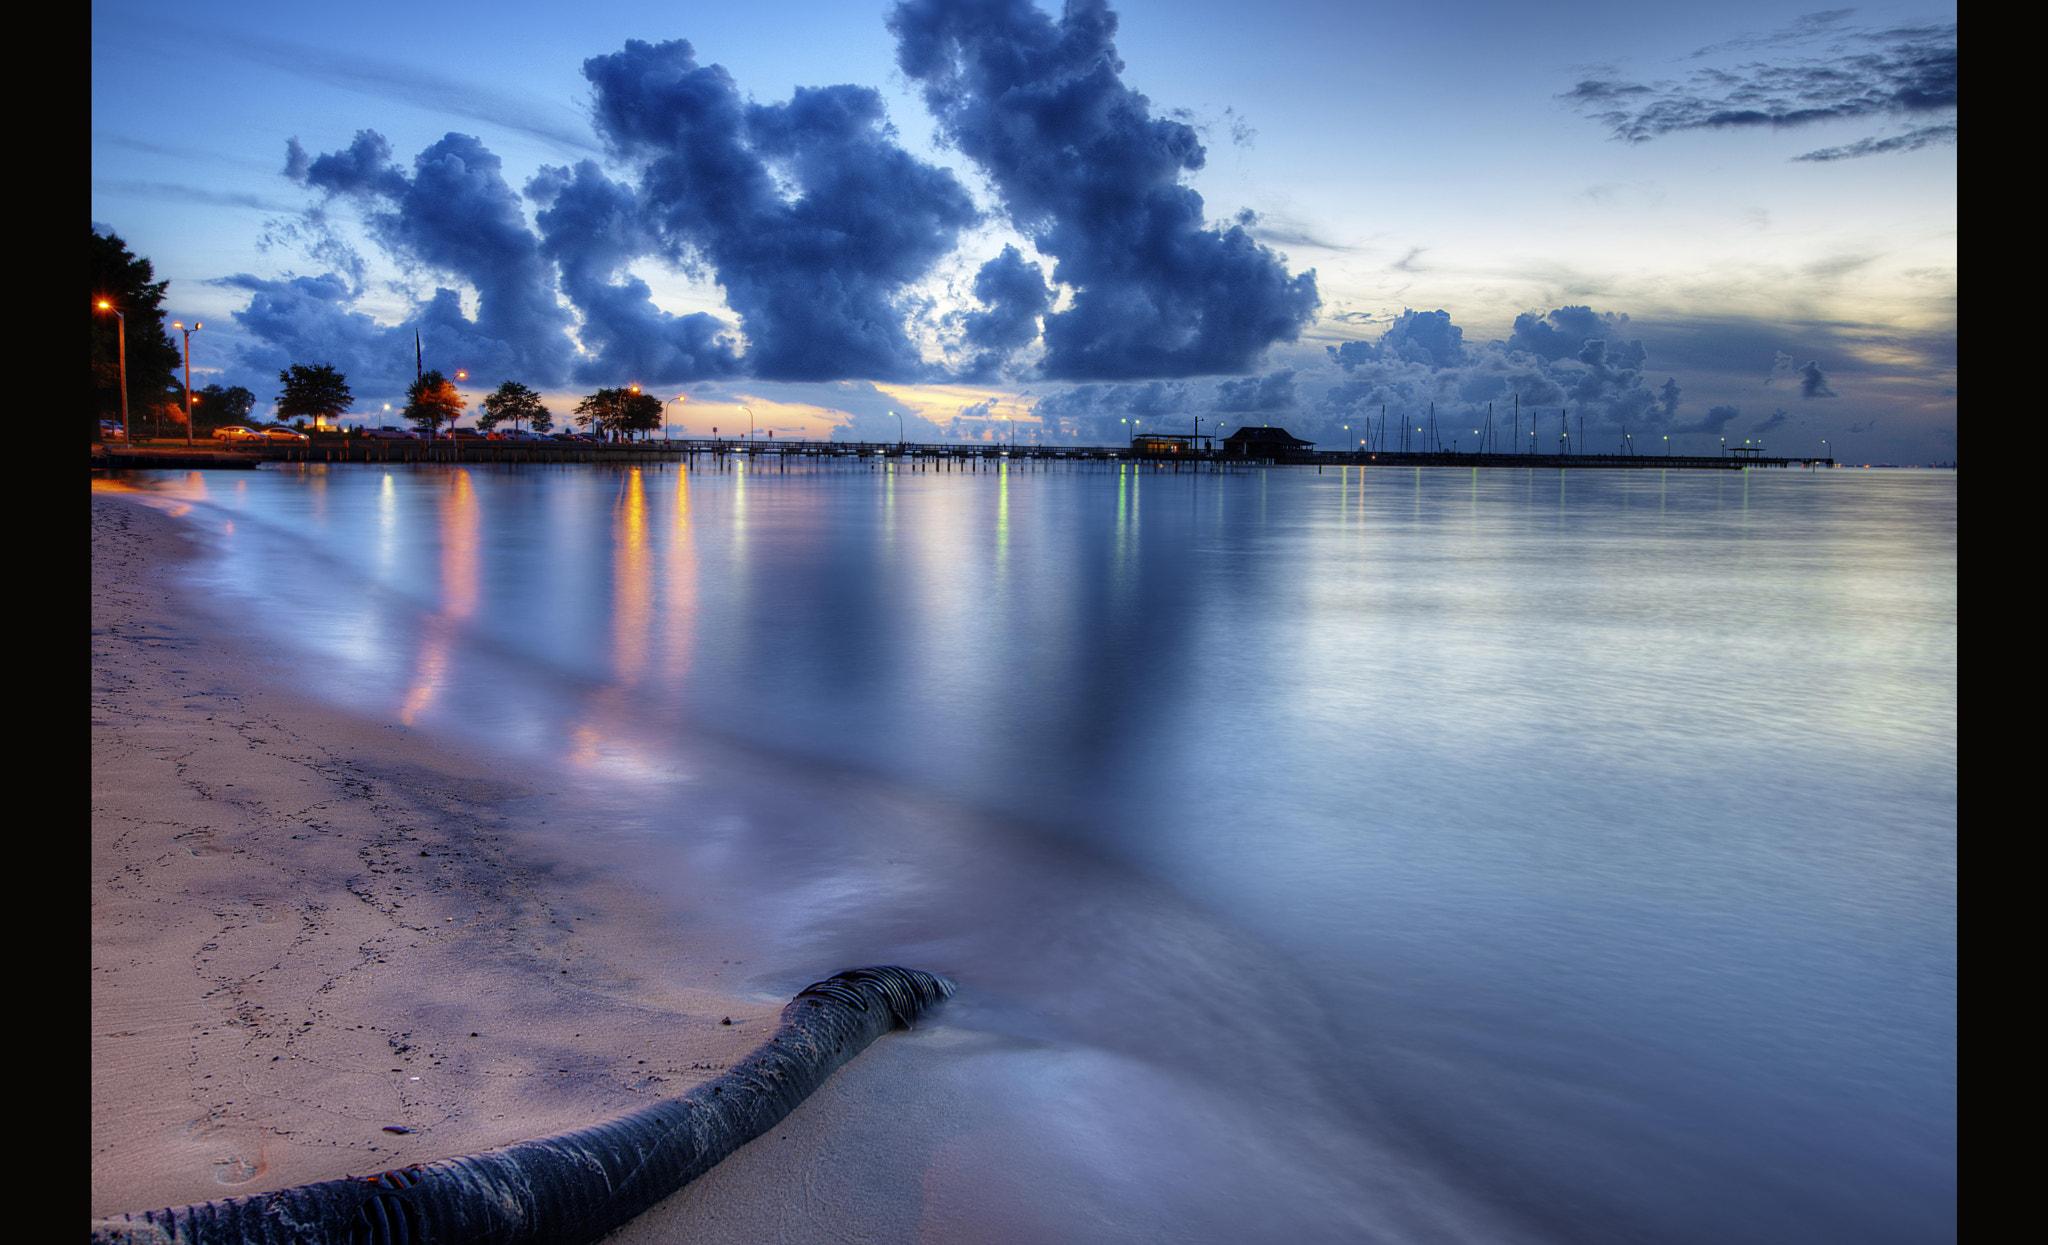 Photograph Fairhope After Sunset by Hemant Shukla on 500px